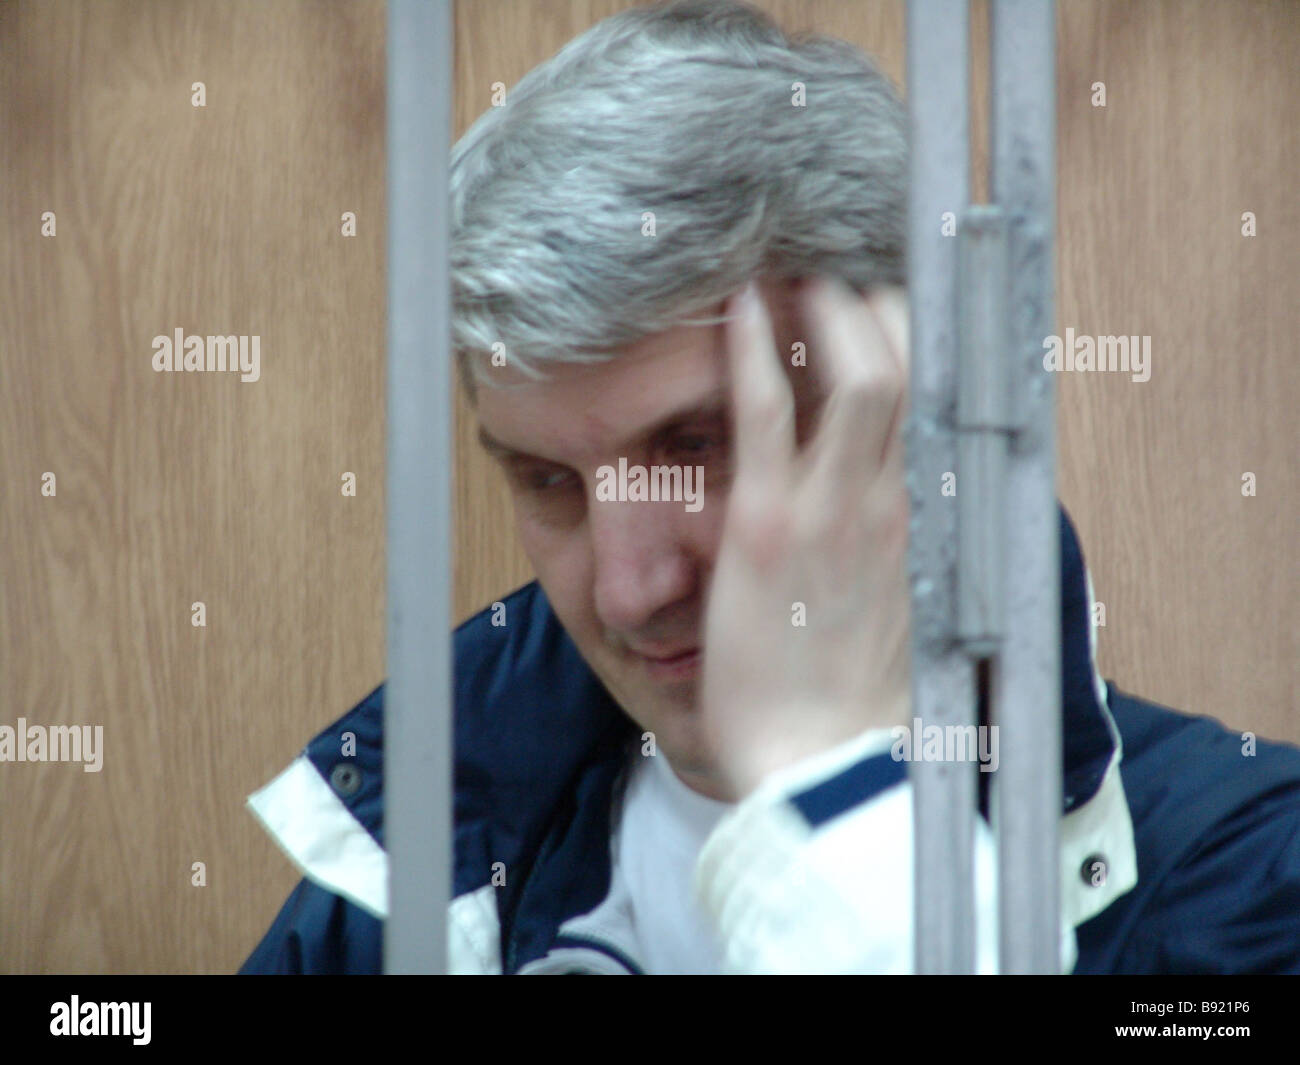 Platon Lebedev during the announcement of his verdict in the Meshchansky district court - Stock Image